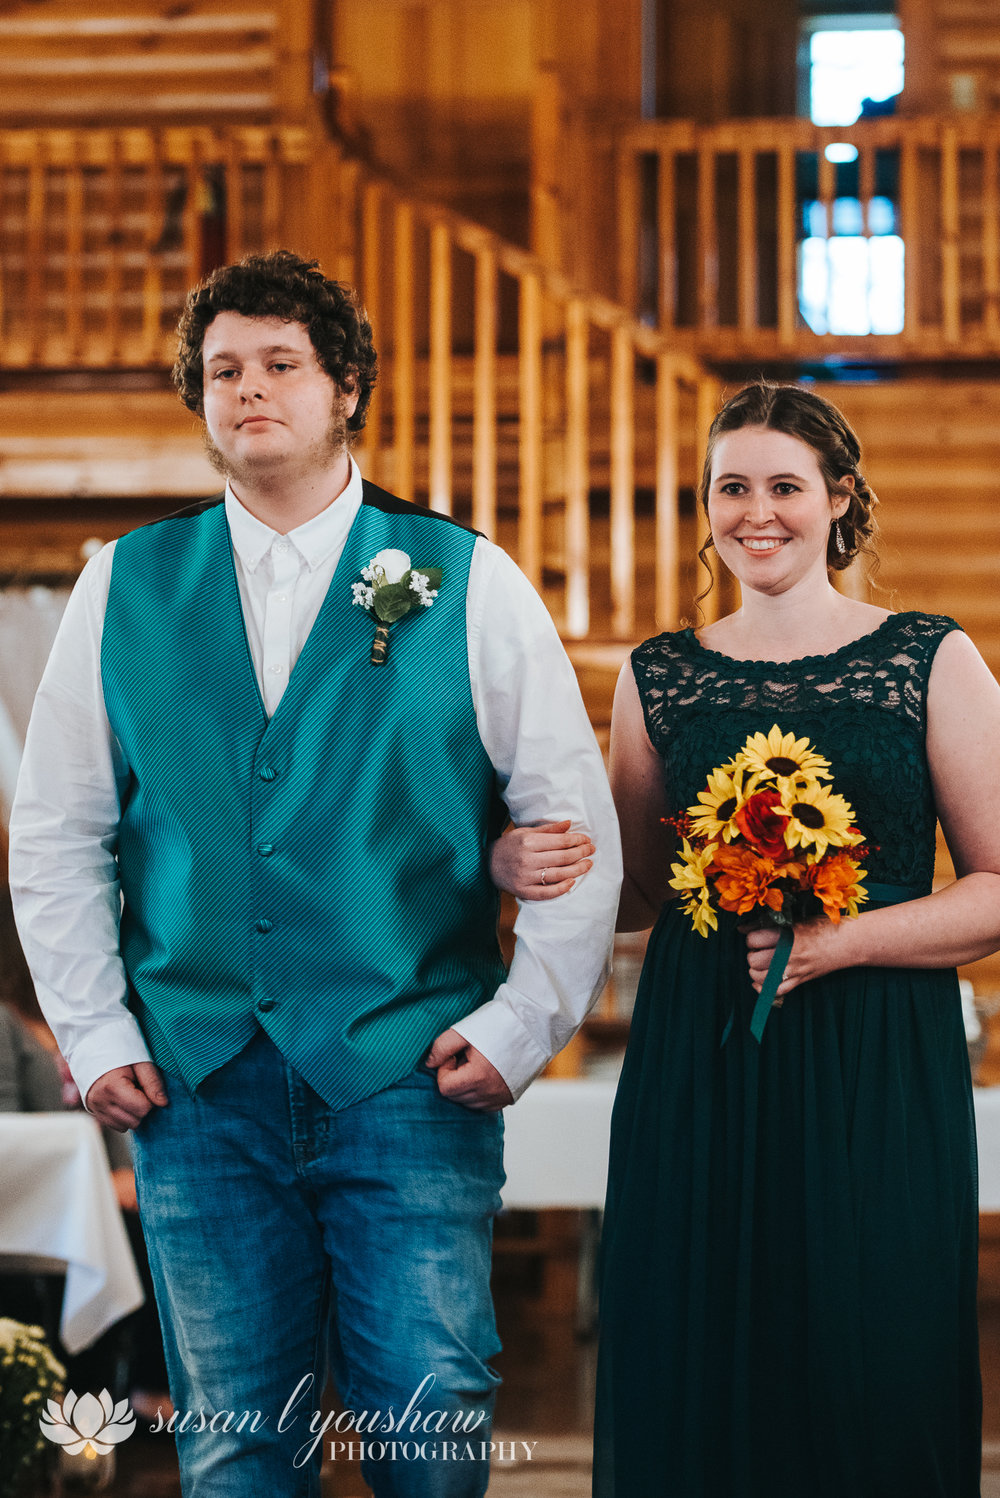 Blog Kayla and Scott 10-27-2018 SLY Photography LLC -53.jpg